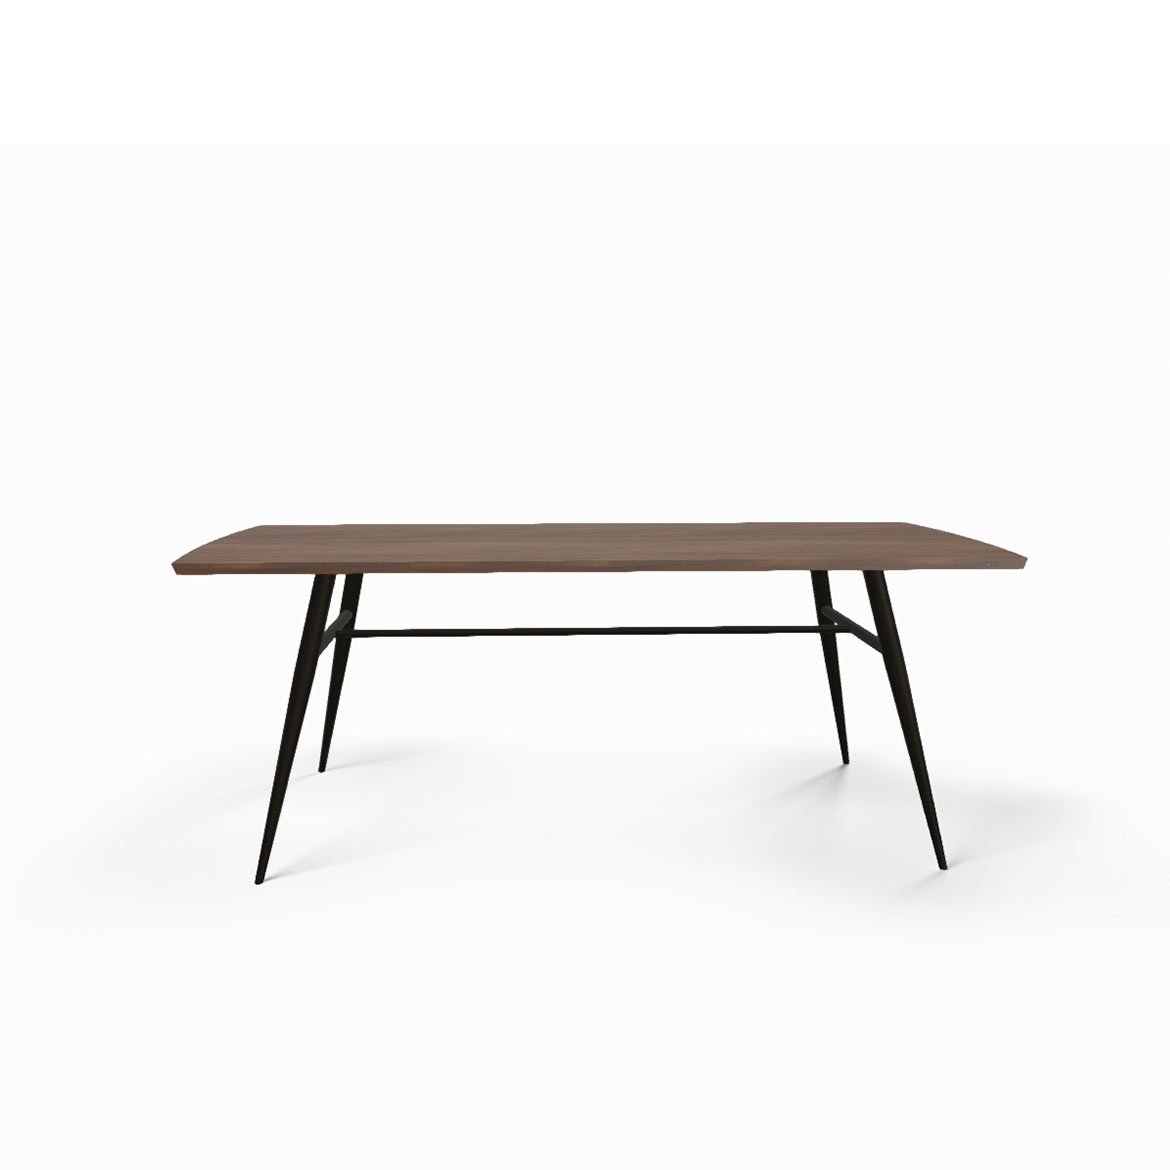 Tate walnut + metal dining table